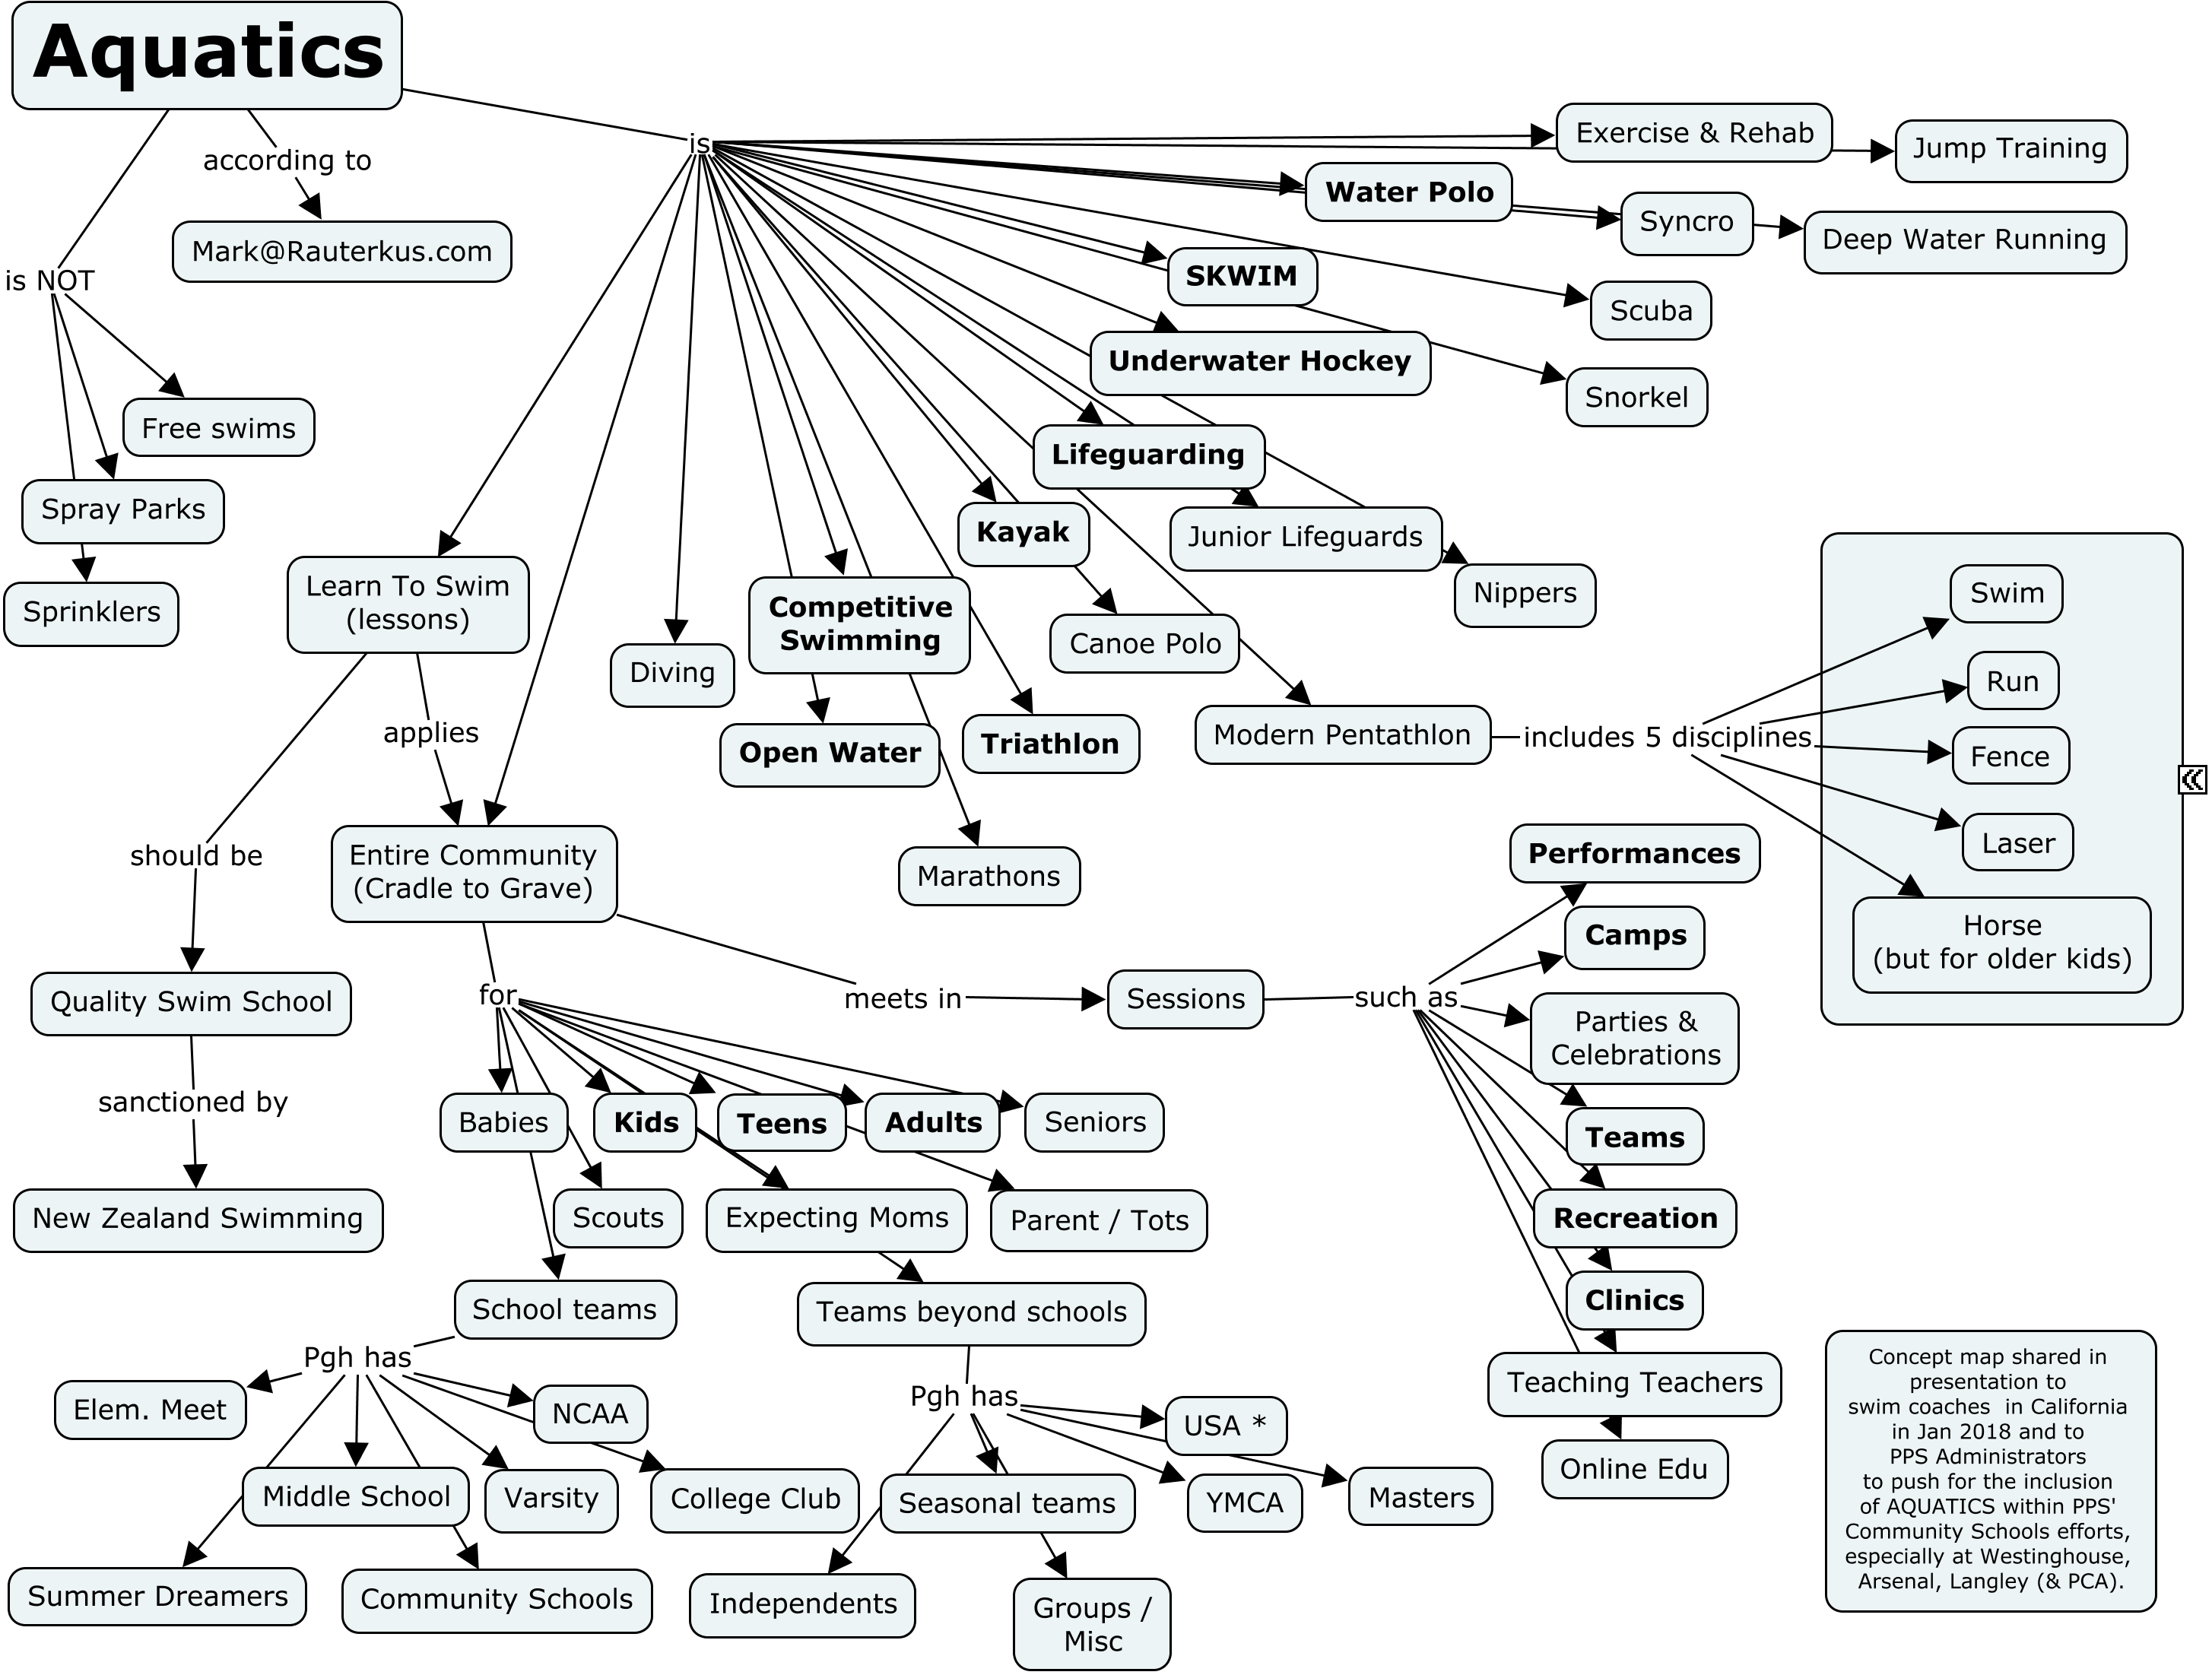 Aquatics concept map with various activities and populations